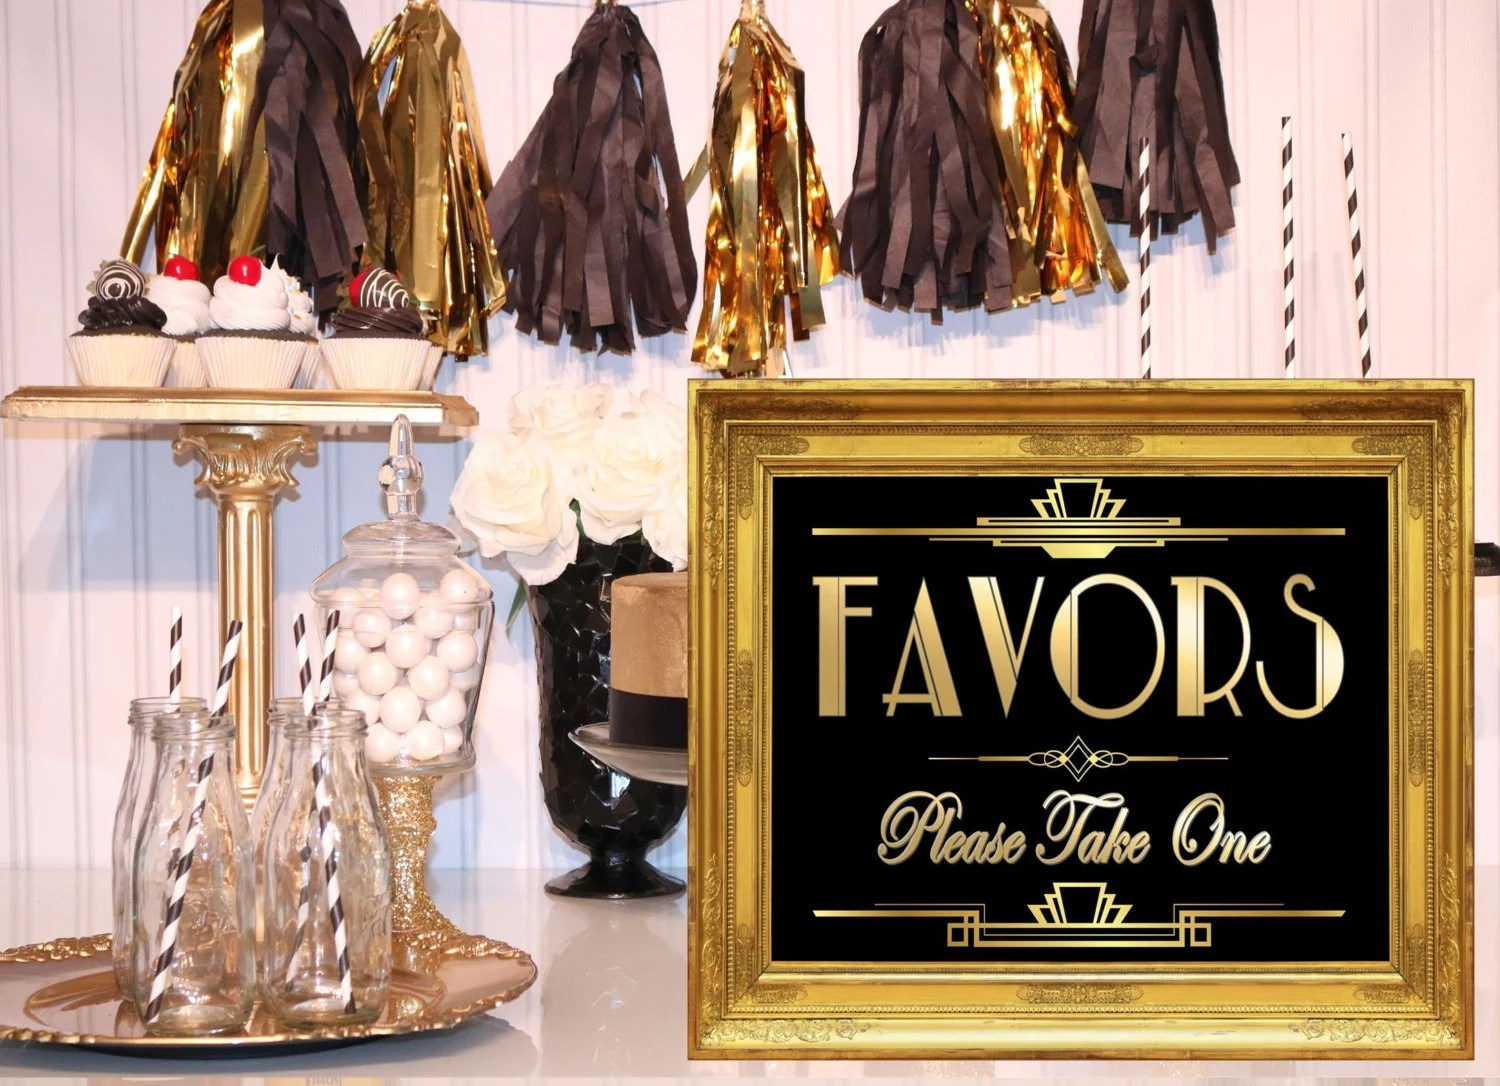 Printable Favors Signgatsby Party Decoration Roaring 20s Art